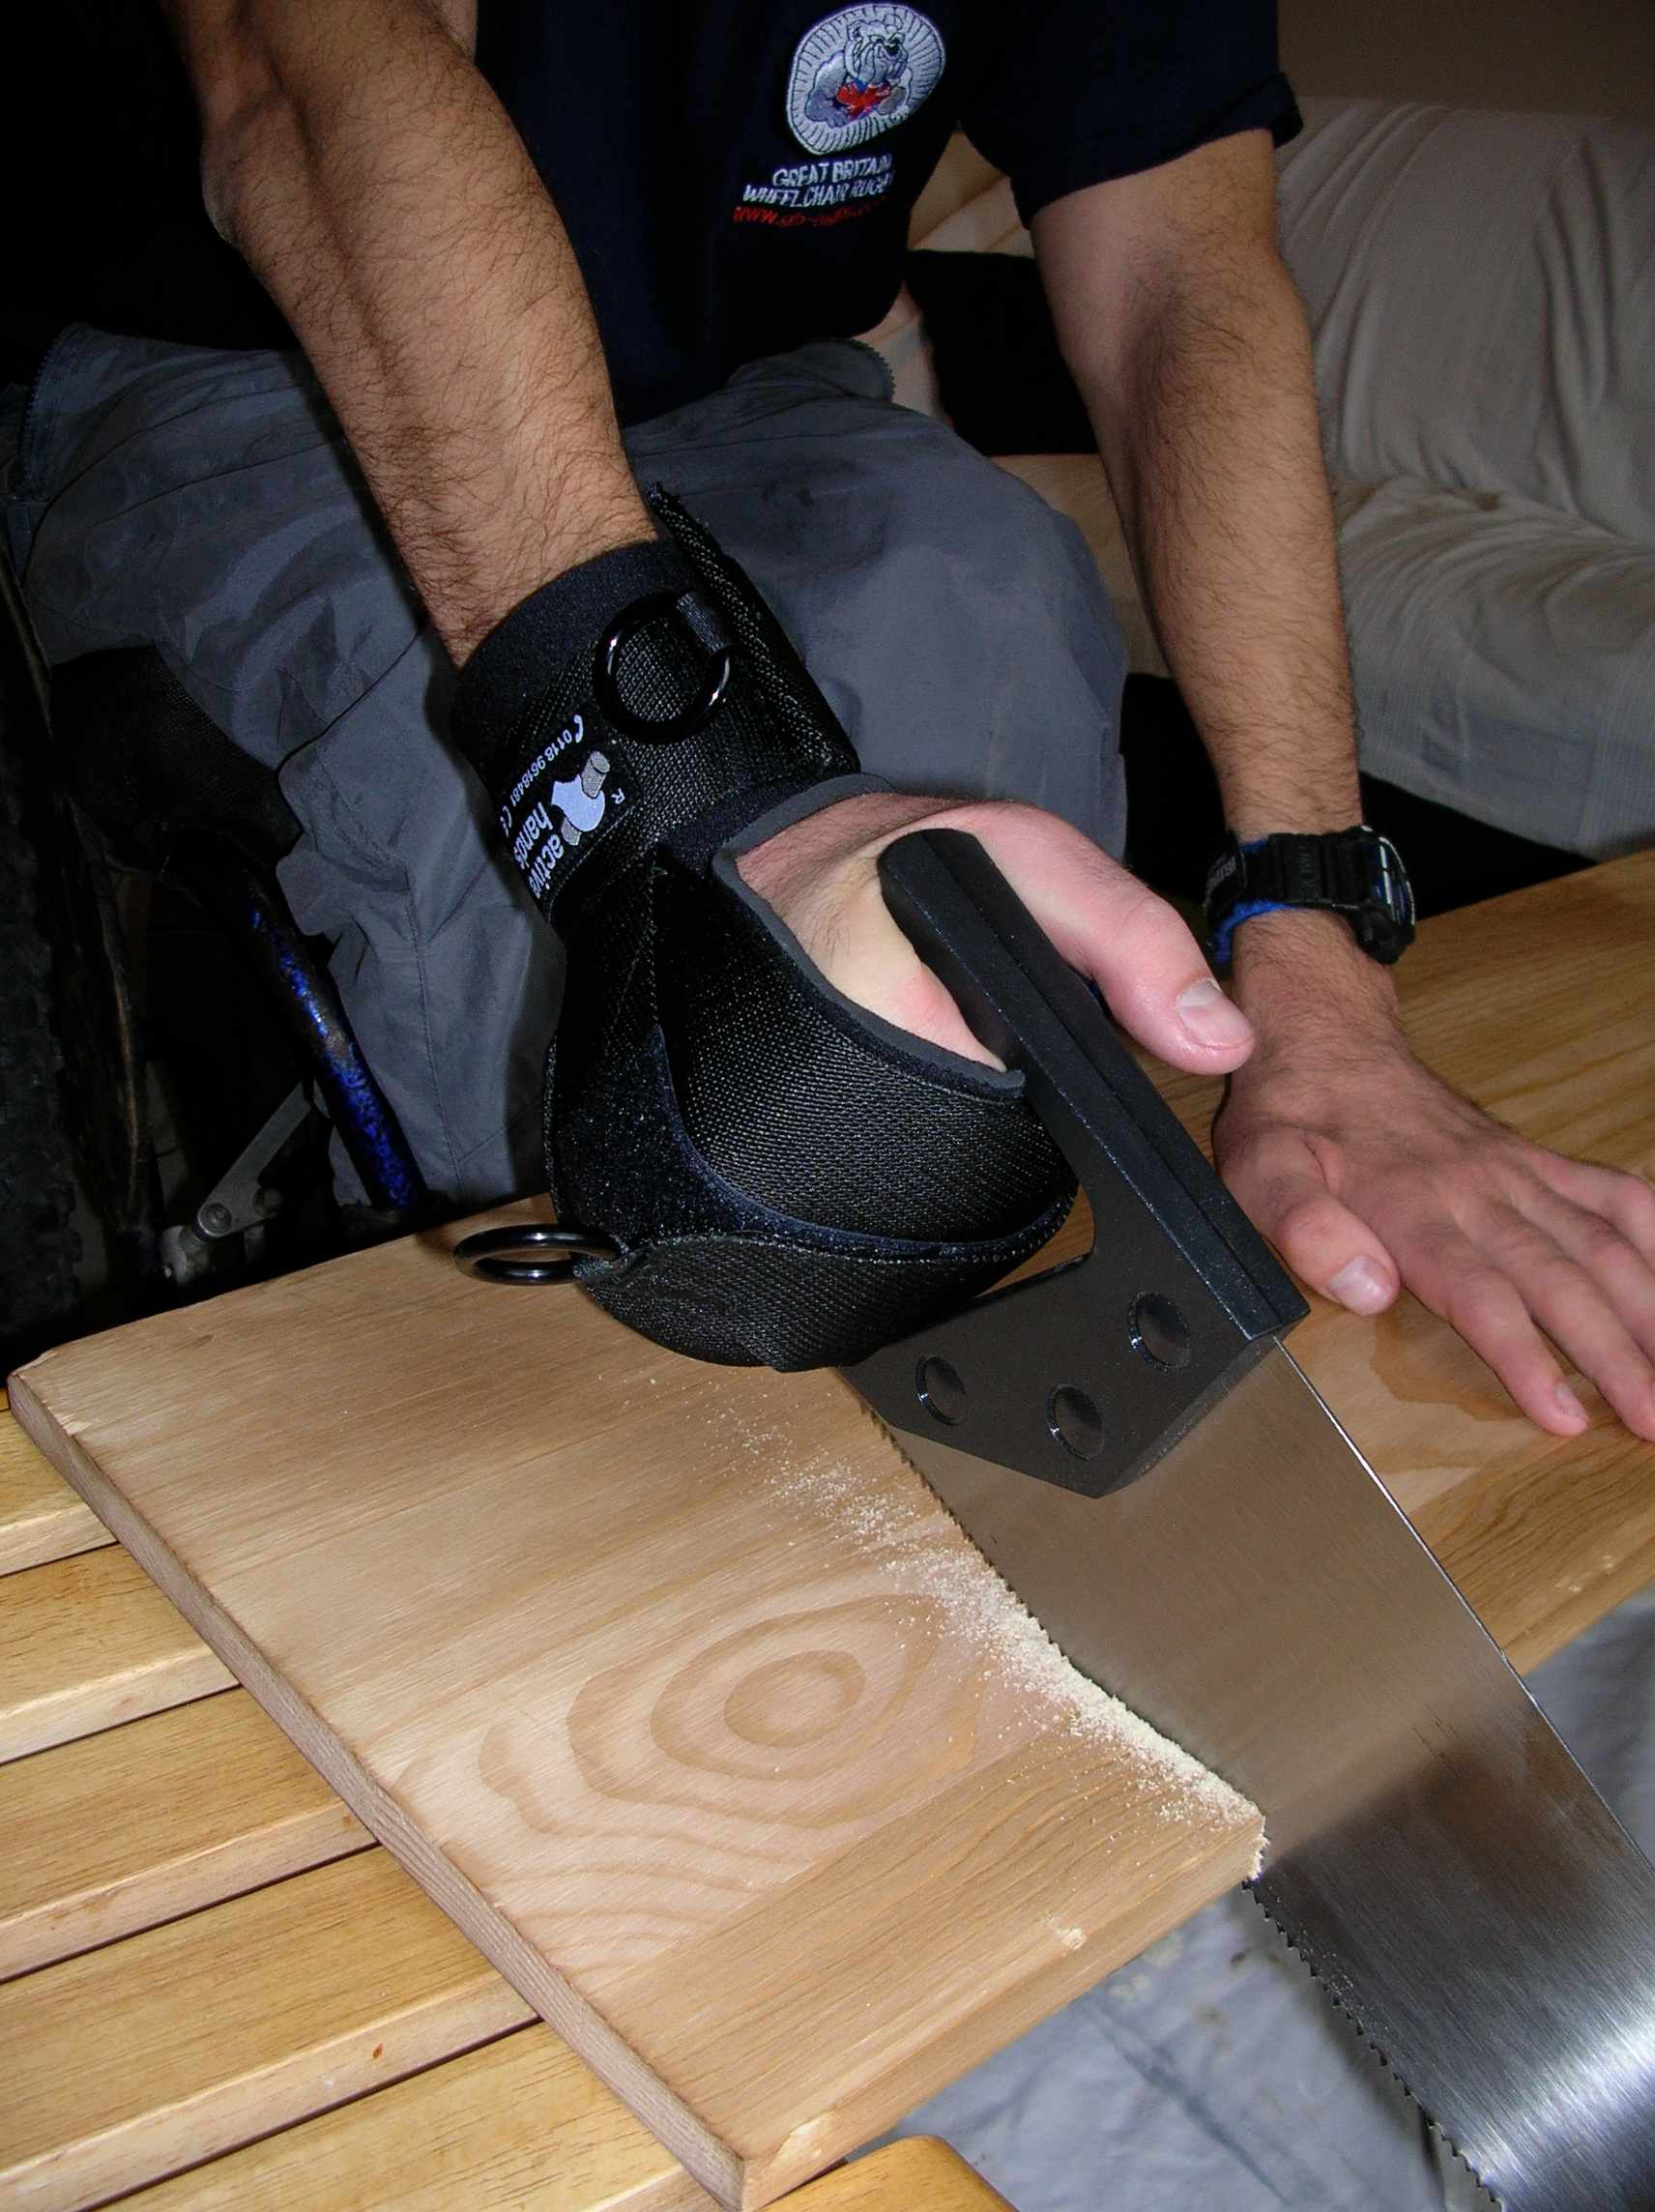 General Purpose aid holding a saw for DIY.